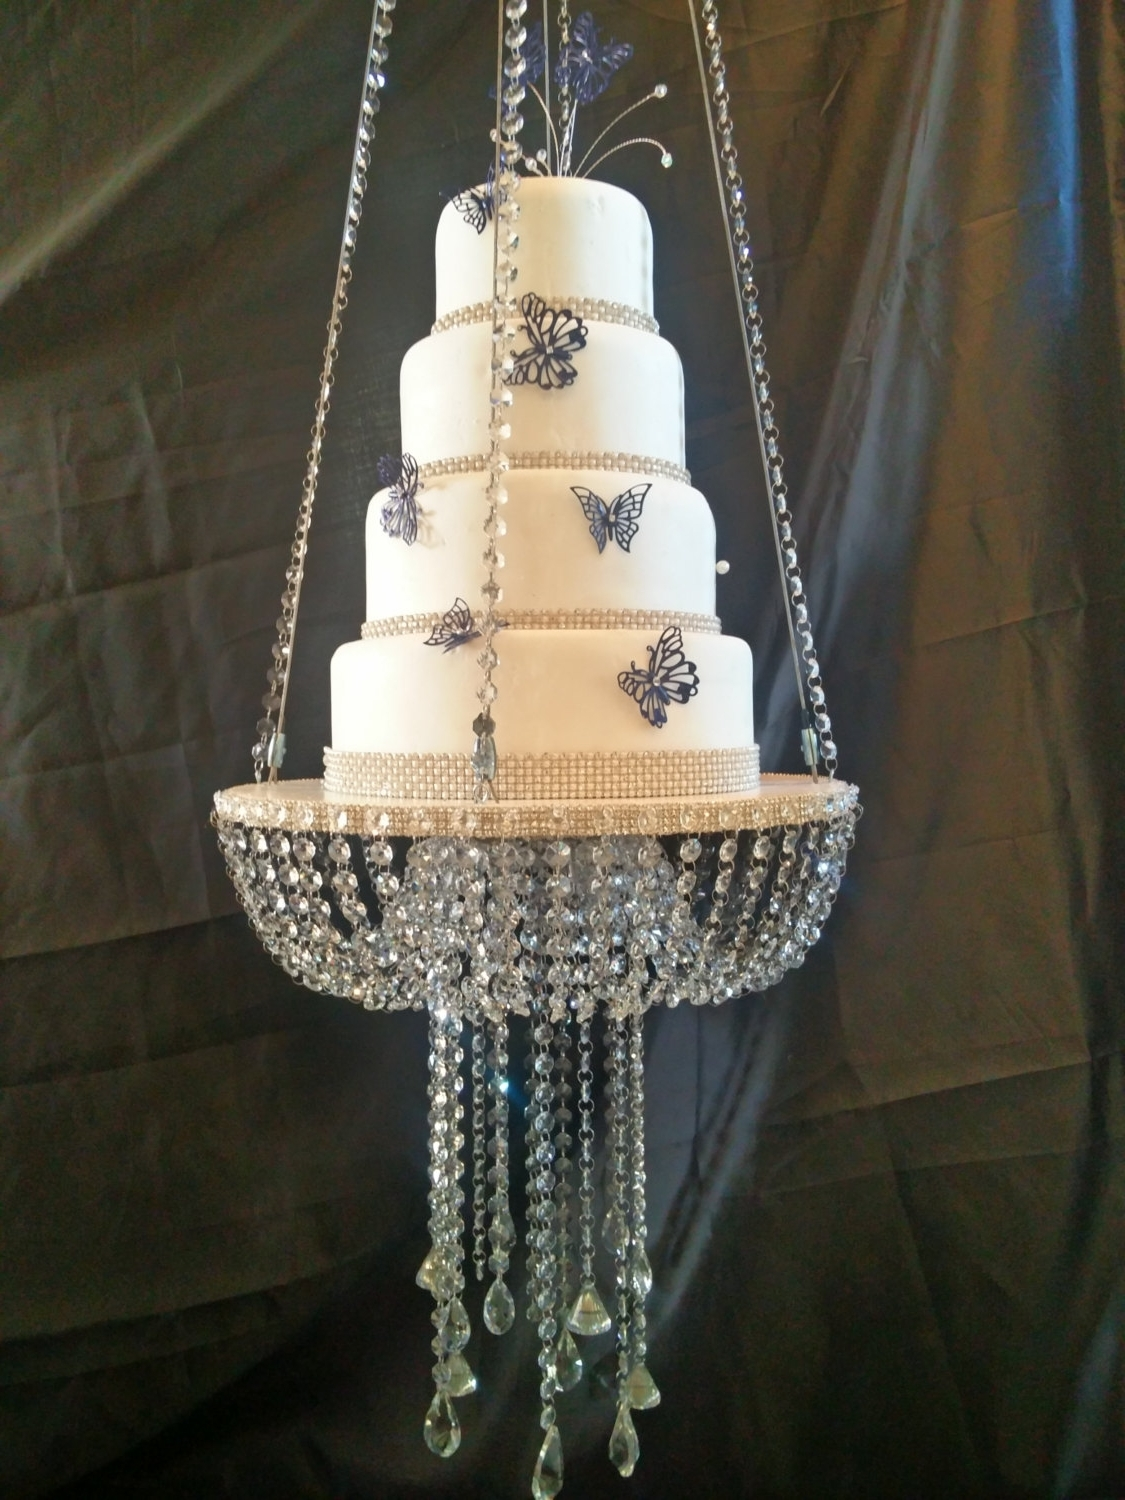 Newest Chandelier: Astonishing Faux Crystal Chandeliers Party Chandelier Within Faux Crystal Chandeliers (View 12 of 20)